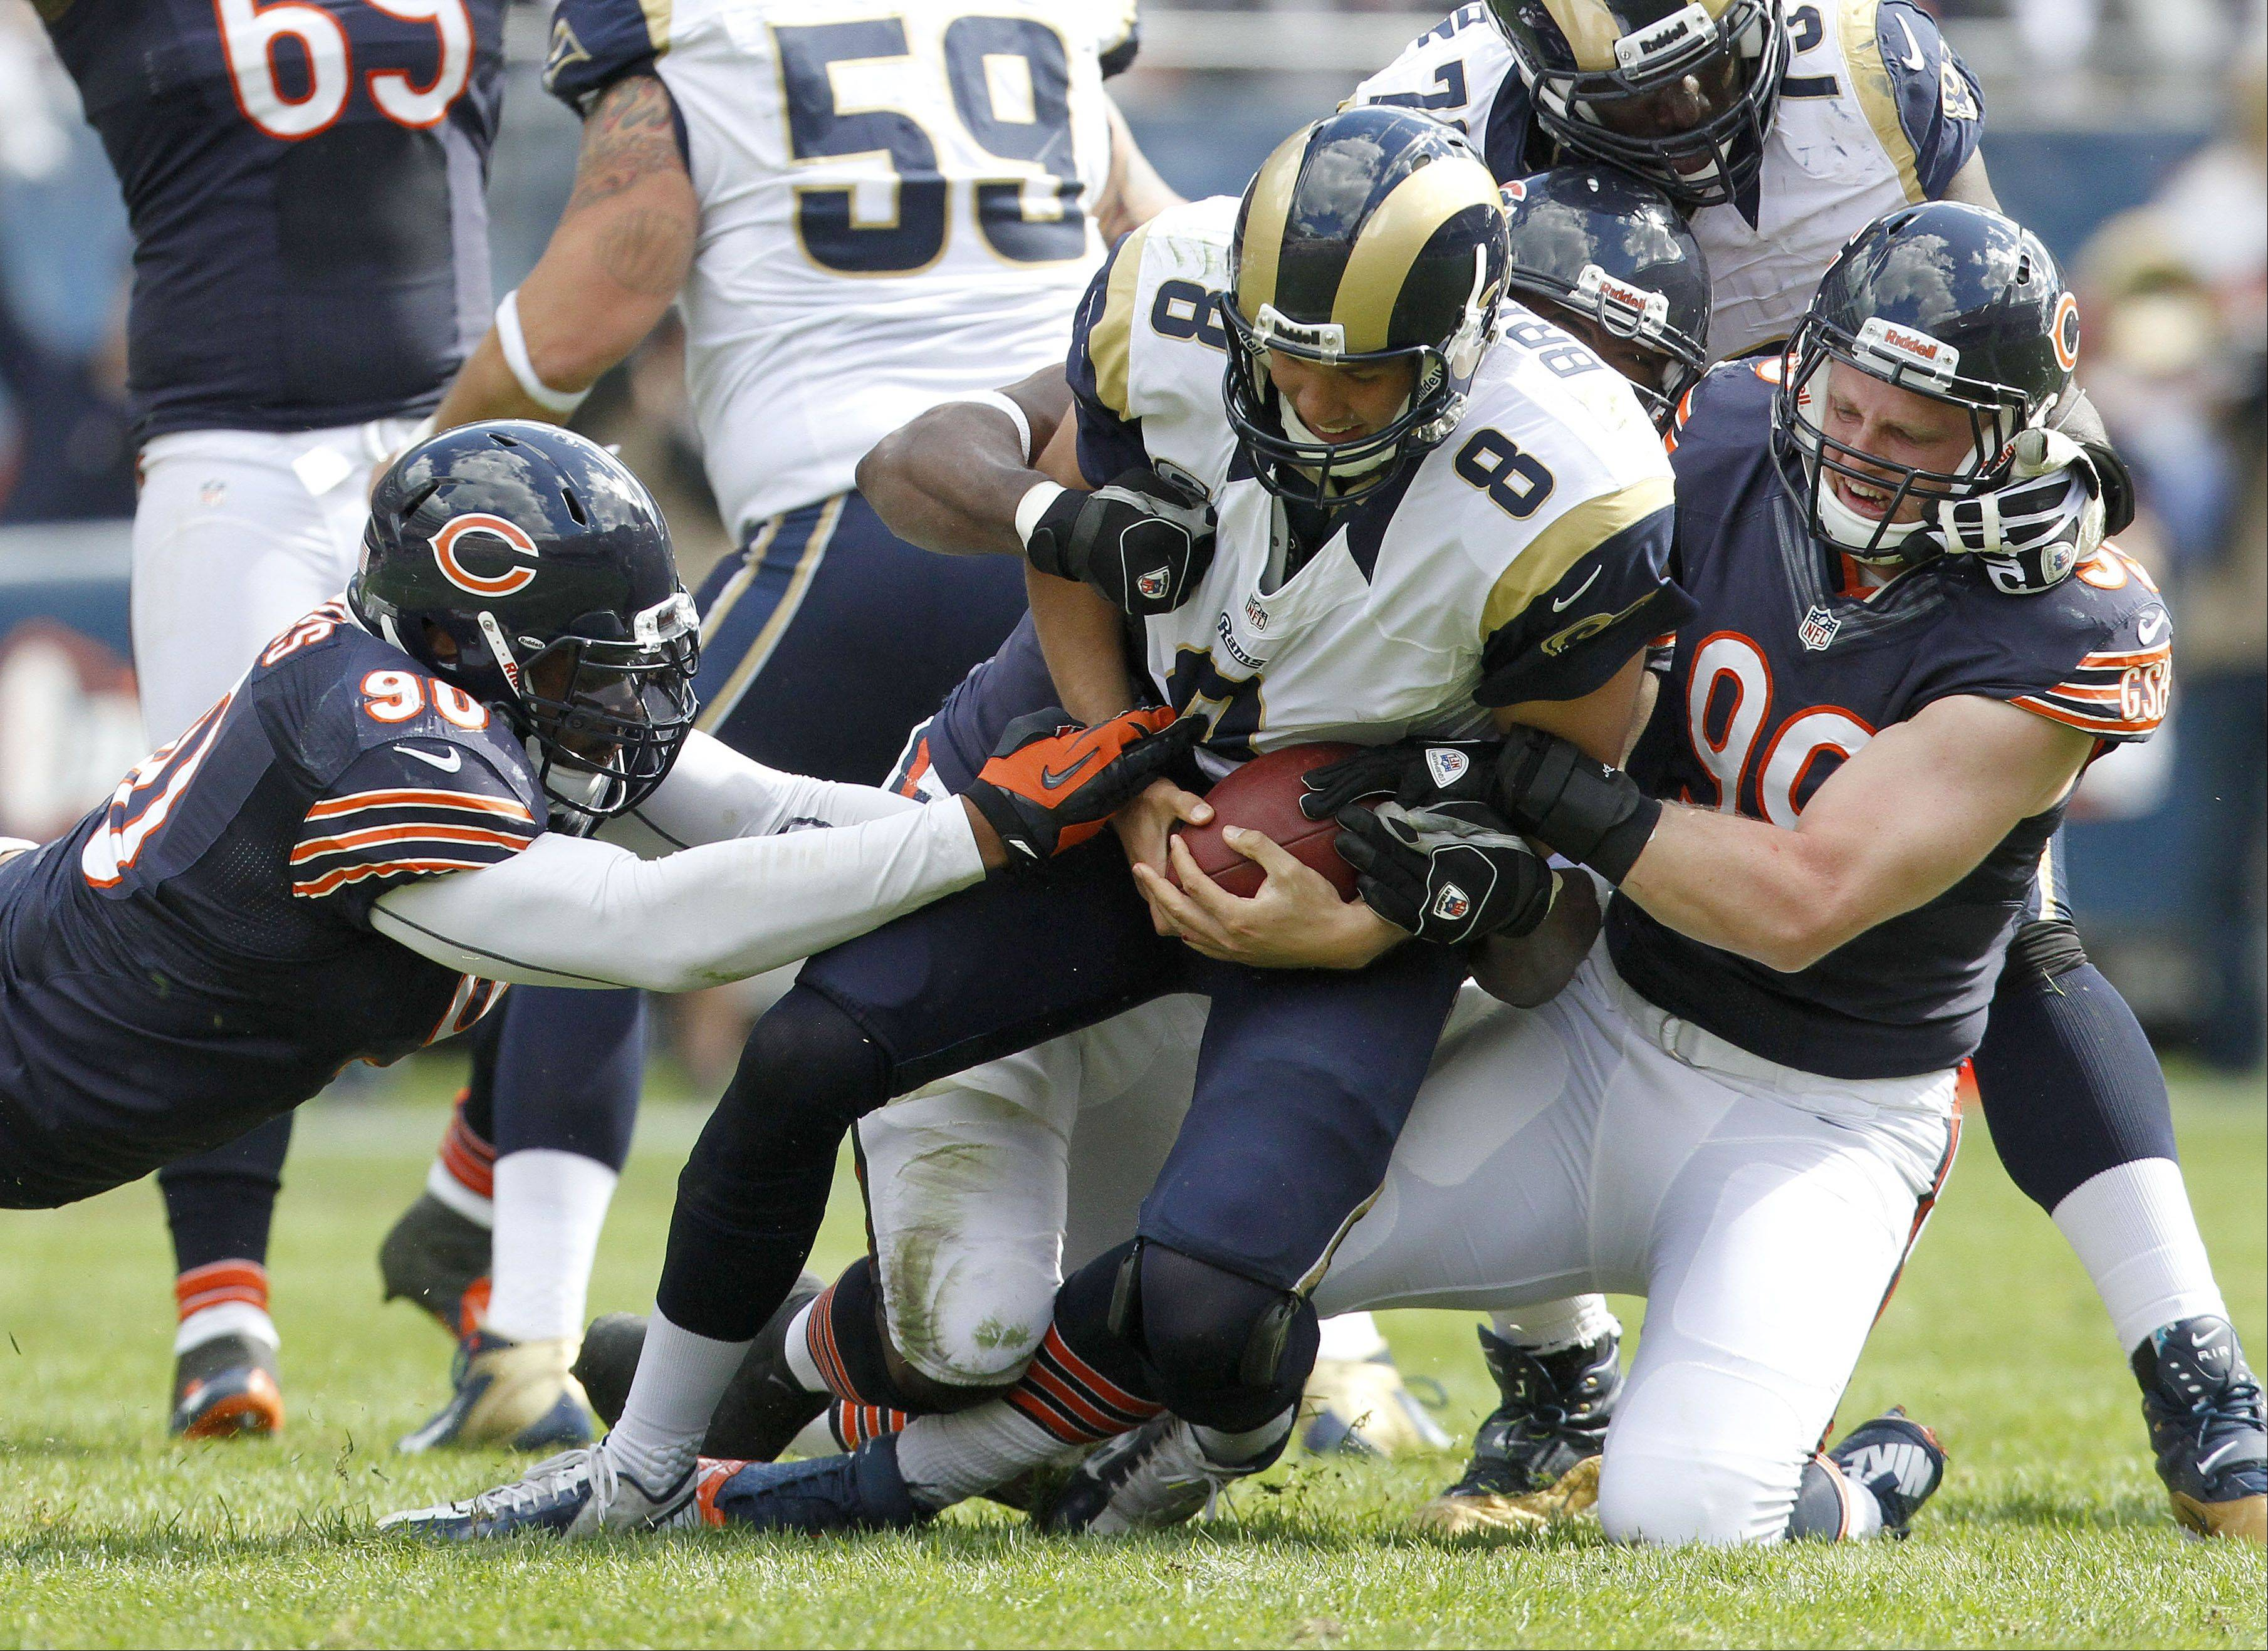 Bears defensive end Julius Peppers and defensive end Shea McClellin sack St. Louis Rams quarterback Sam Bradford during the Bears 23-6 win over the St. Louis Rams Sunday at Soldier Field in Chicago.